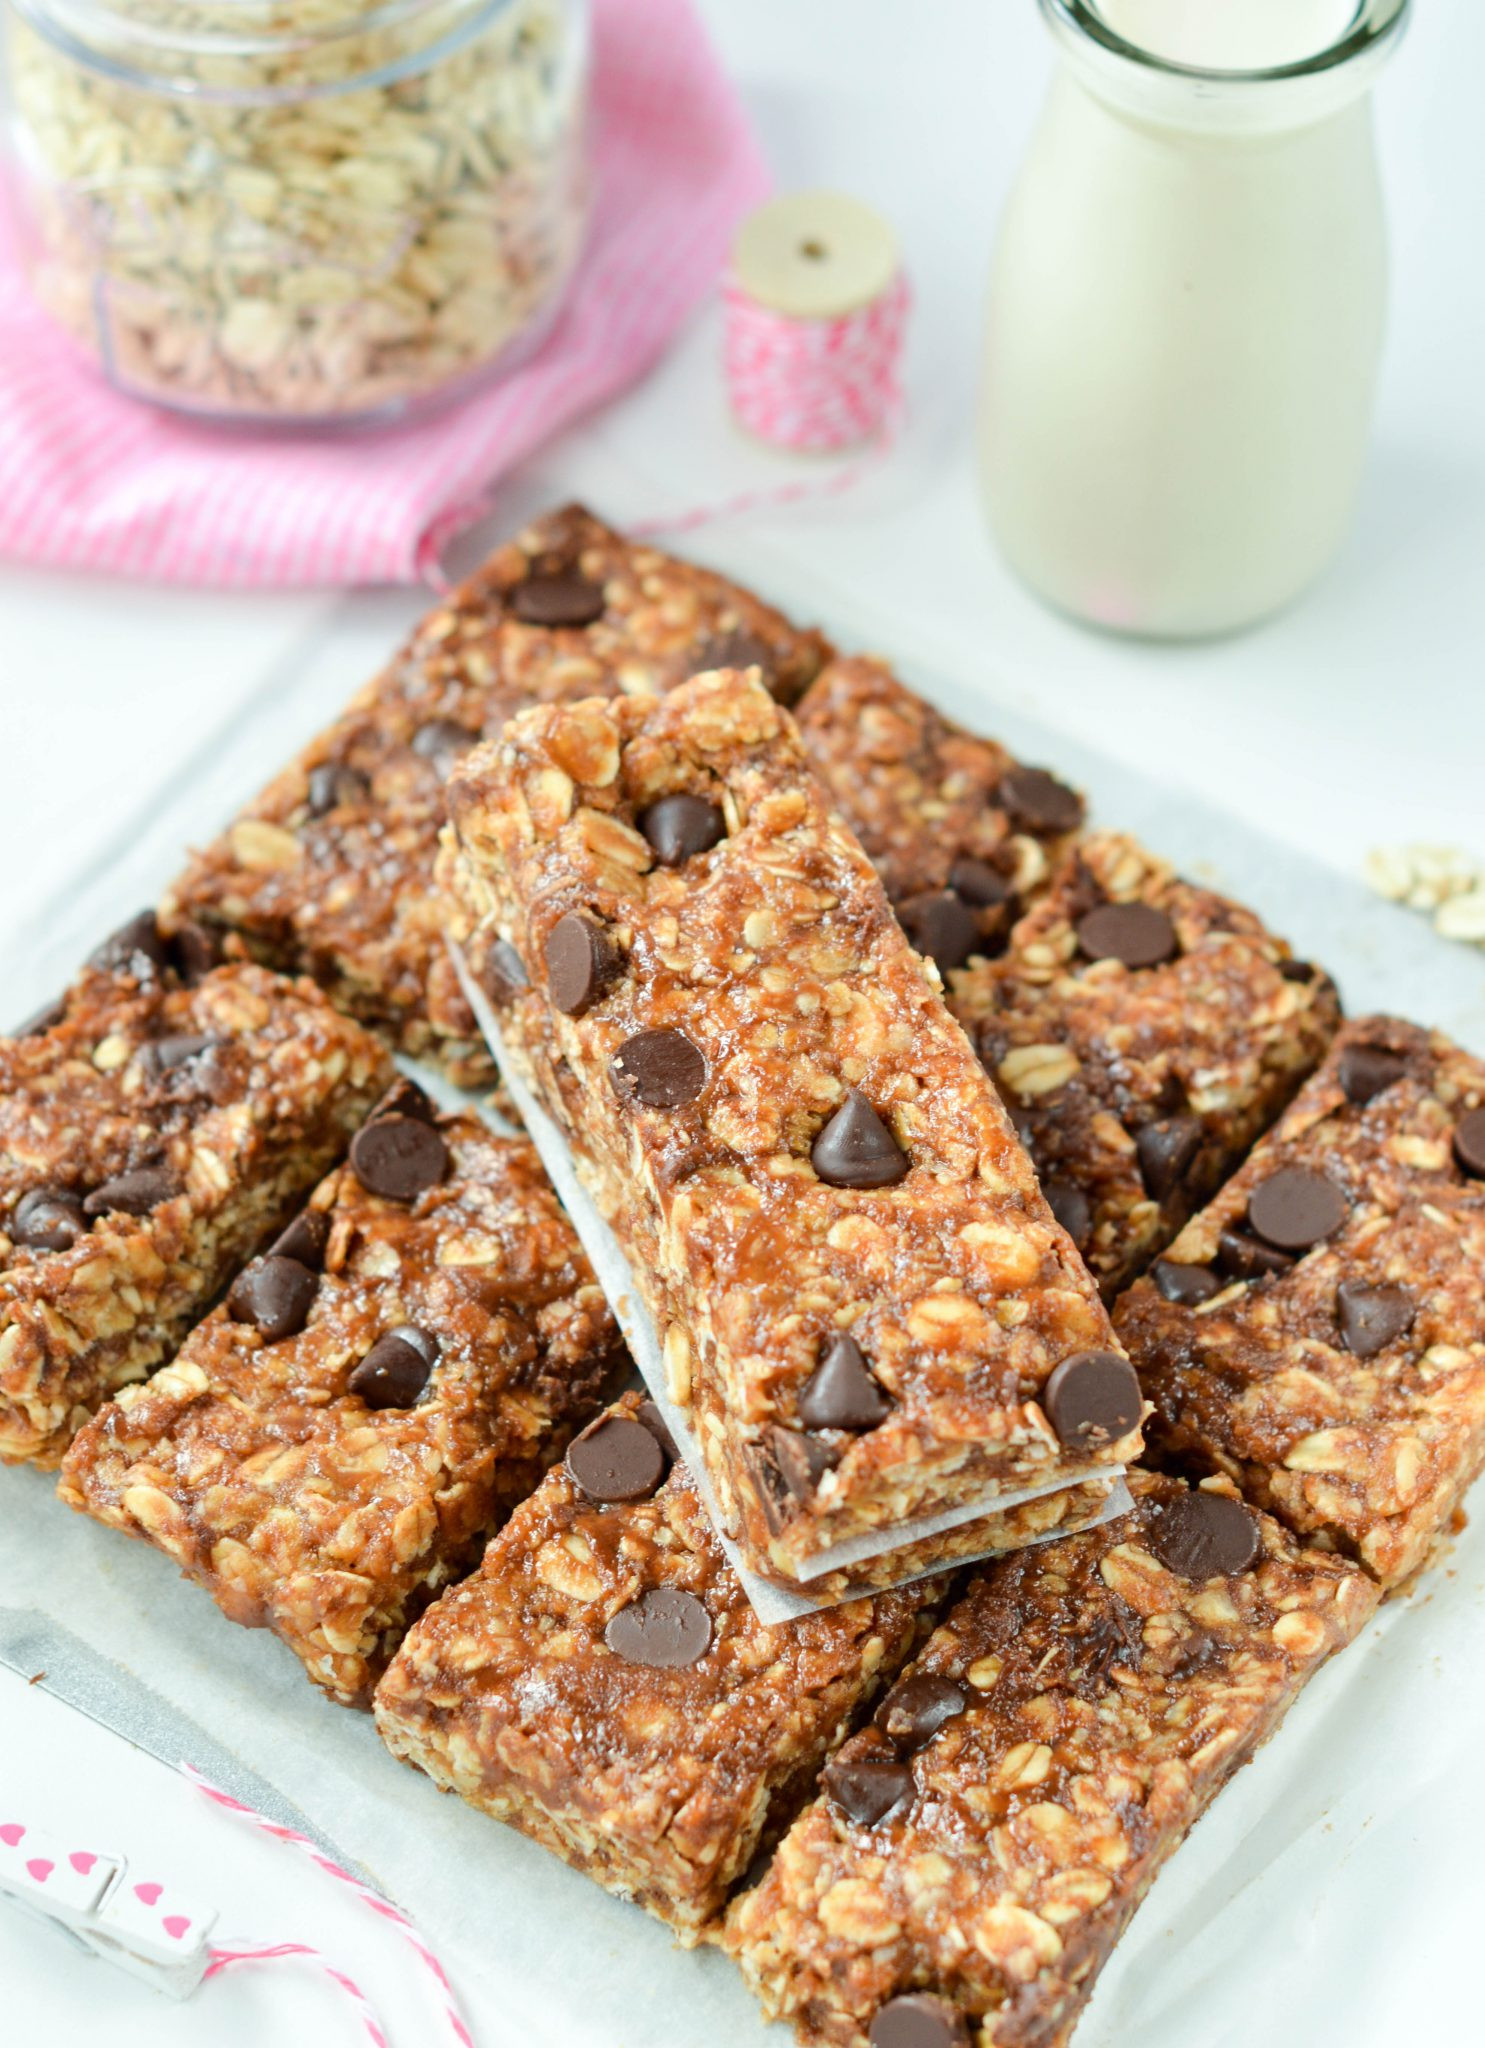 Vegan Protein Bars  3 Healthy Vegan Protein Bars for Your Snack Time at Work